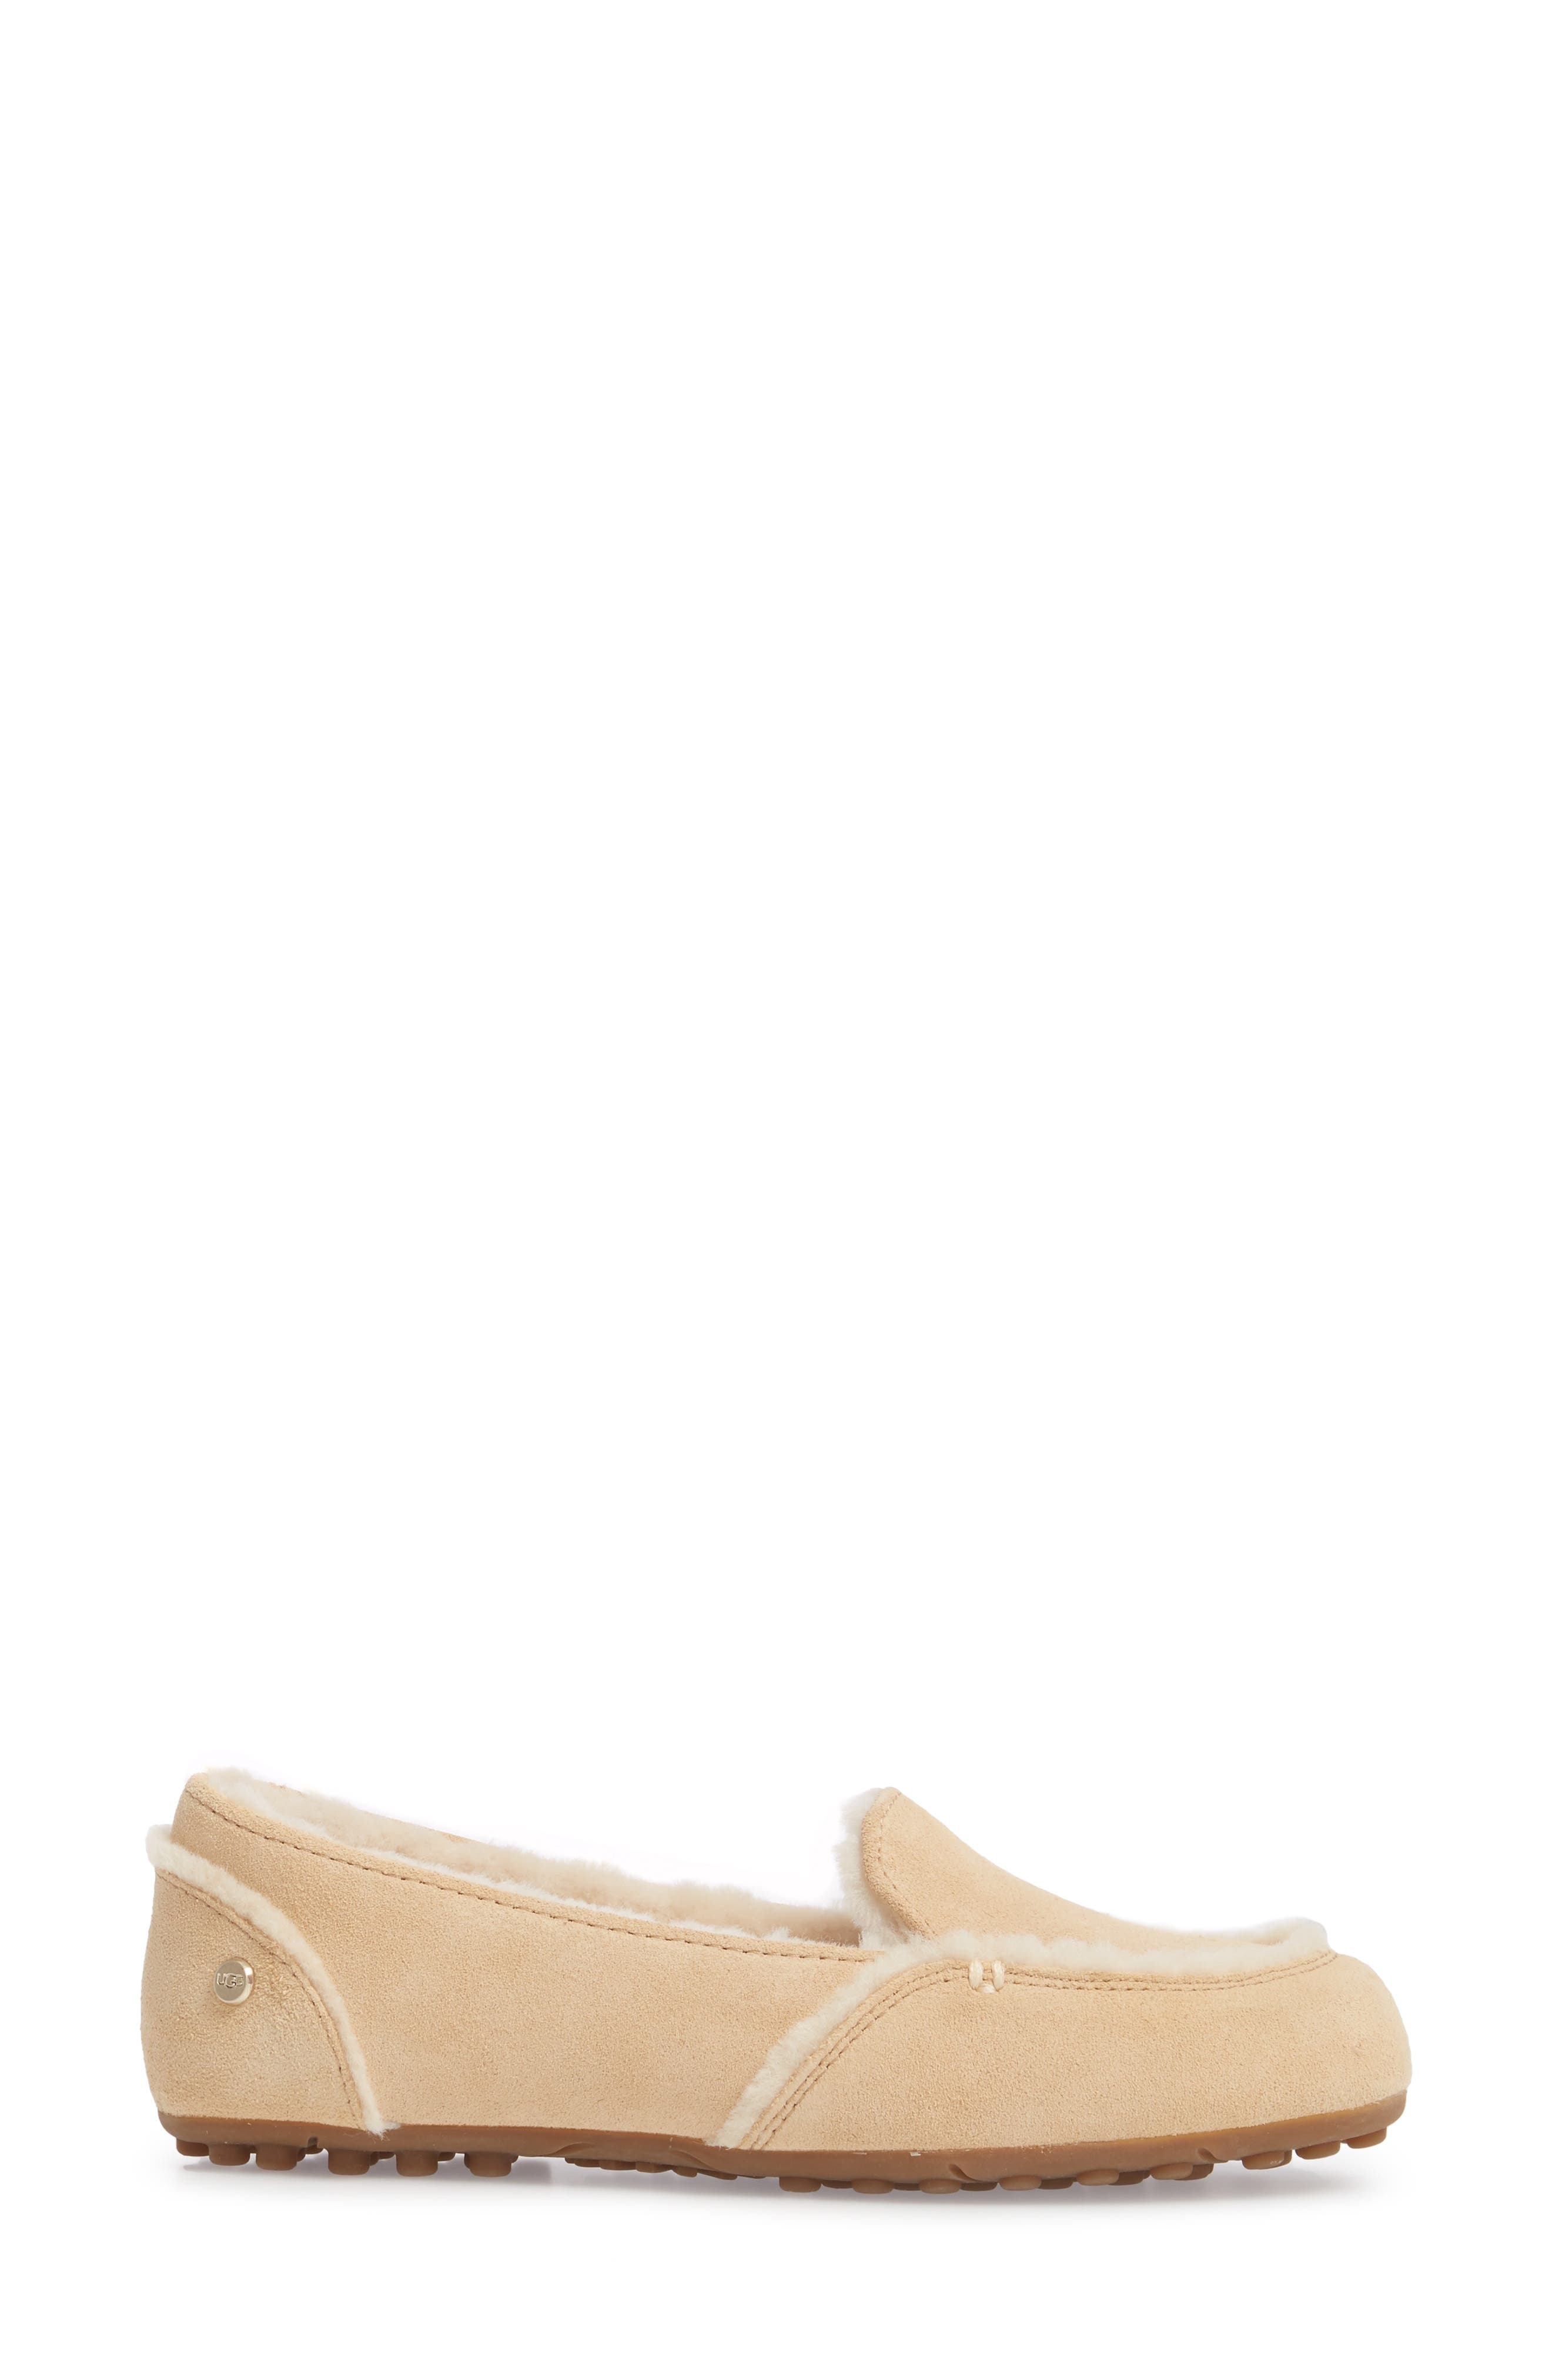 Hailey Slipper,                             Alternate thumbnail 3, color,                             Beige Suede